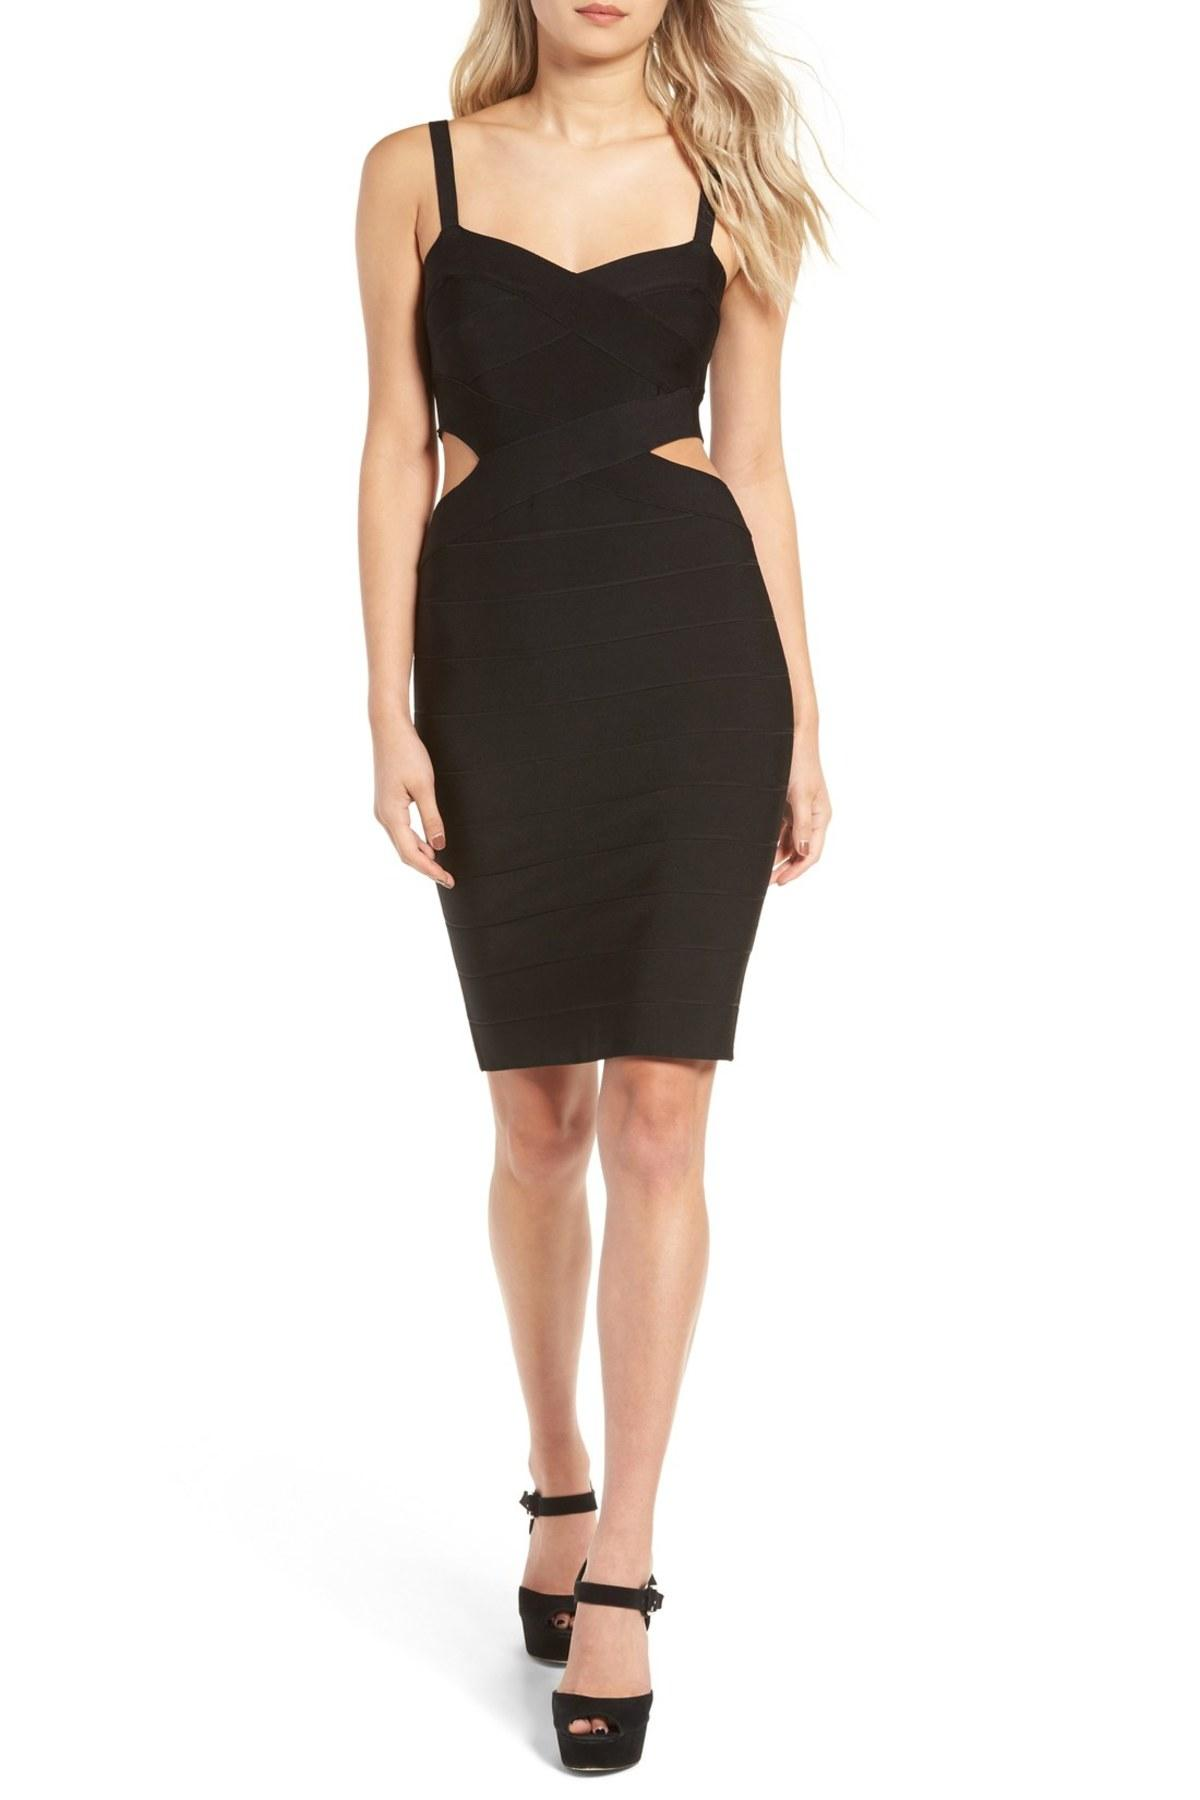 Lyst Glamorous Bandage Body Con Dress In Black